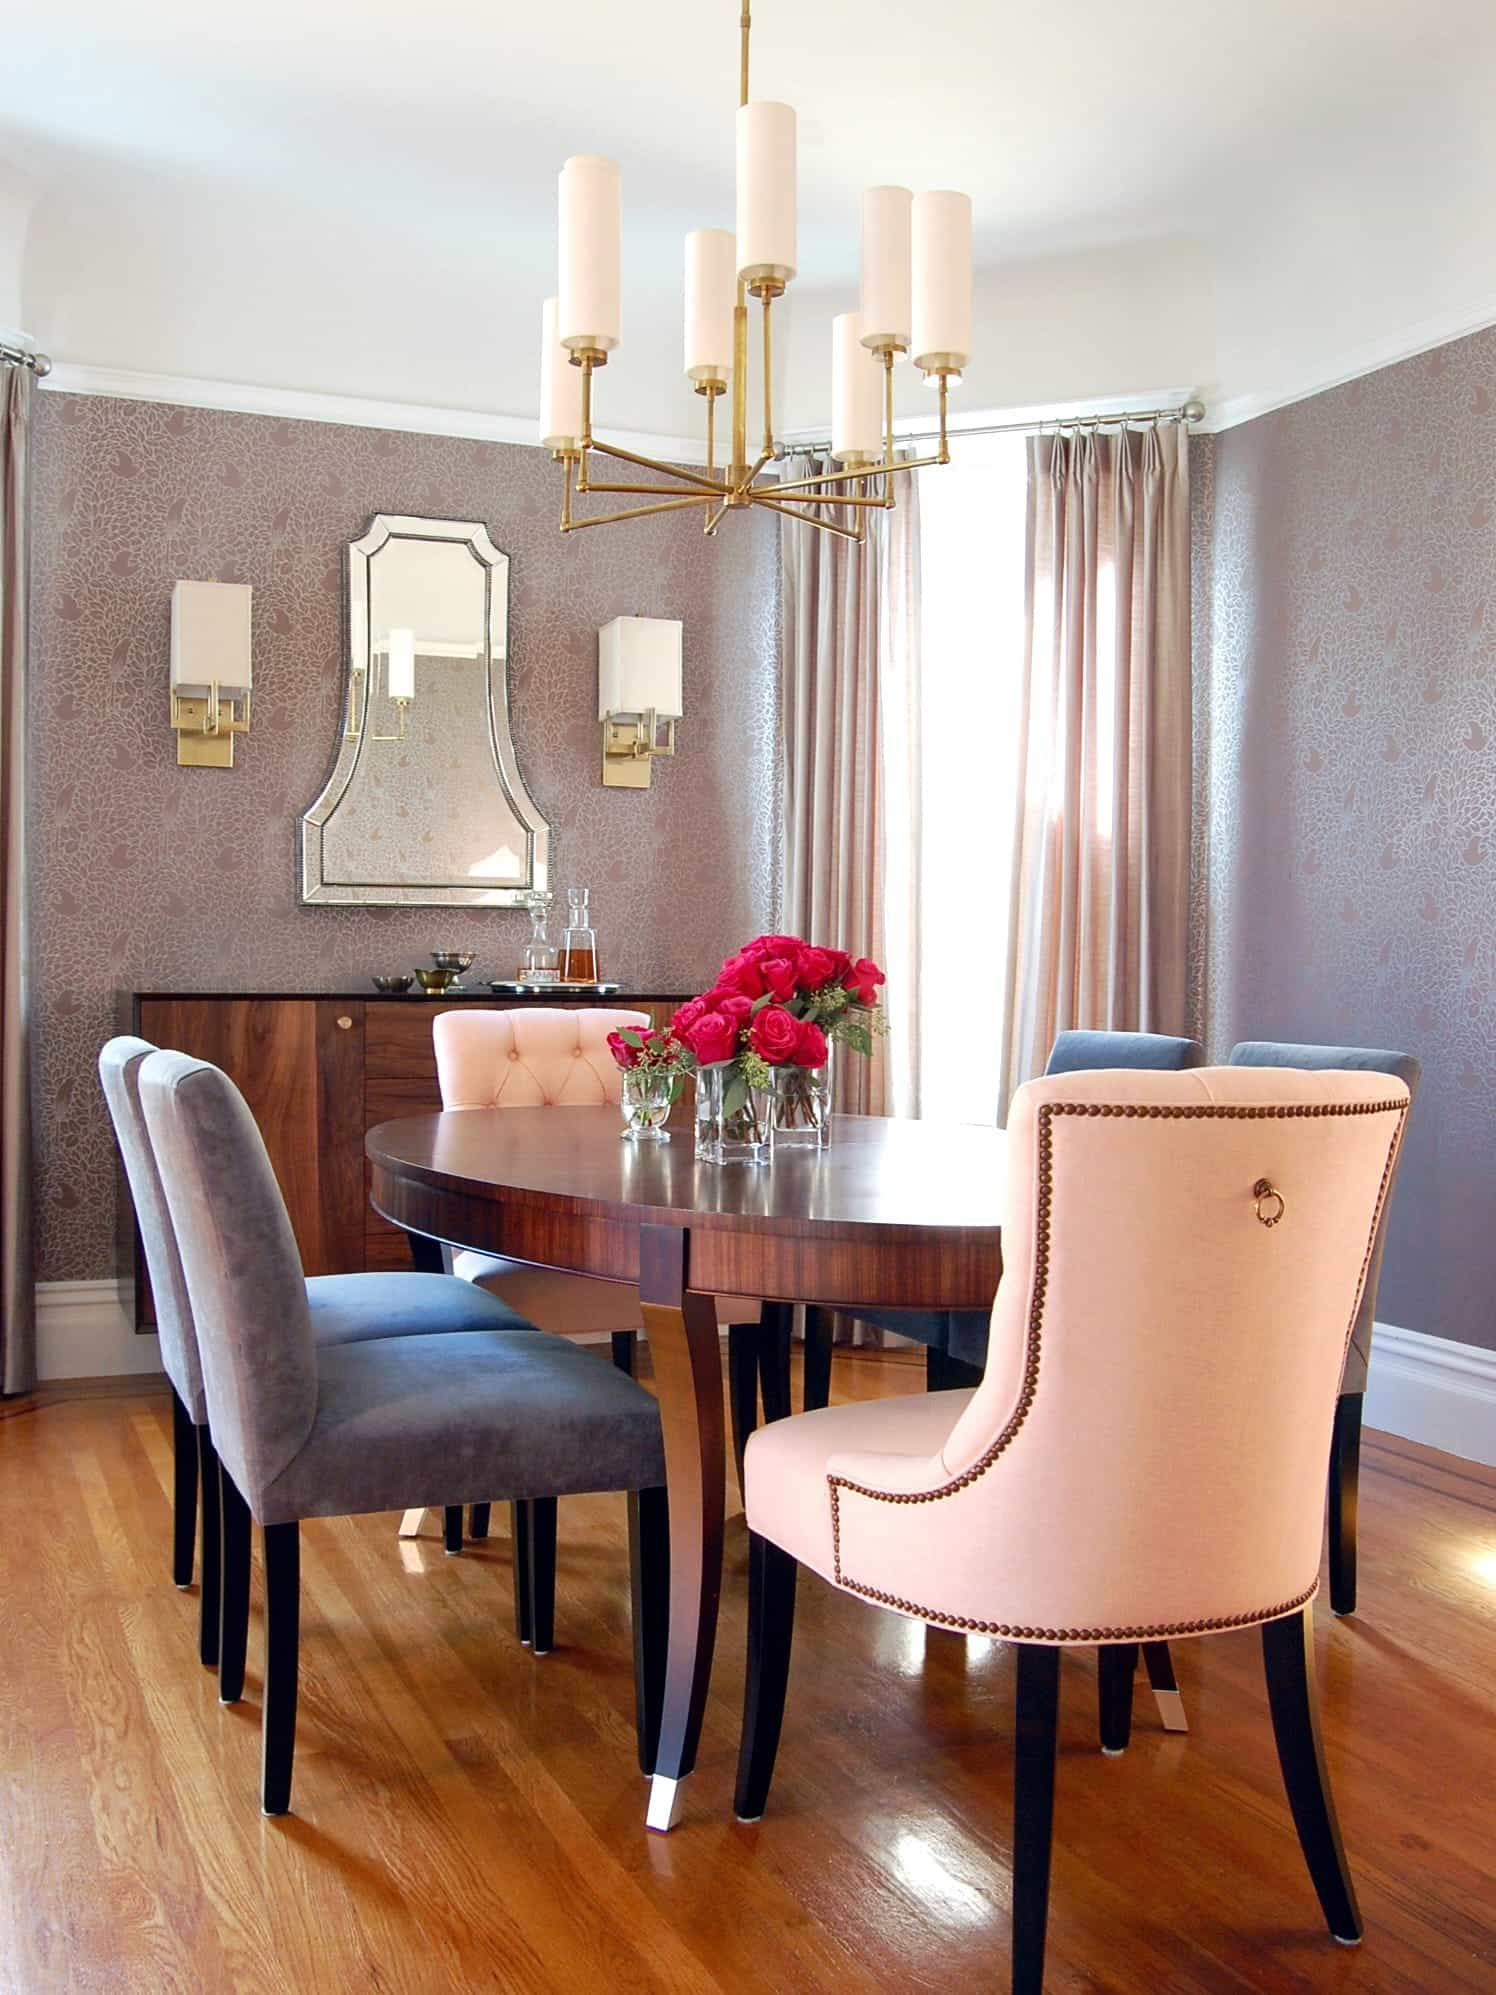 Elegant Romantic Dining Room With Pink And Gray Eclectic Chairs With Chandelier (View 11 of 21)